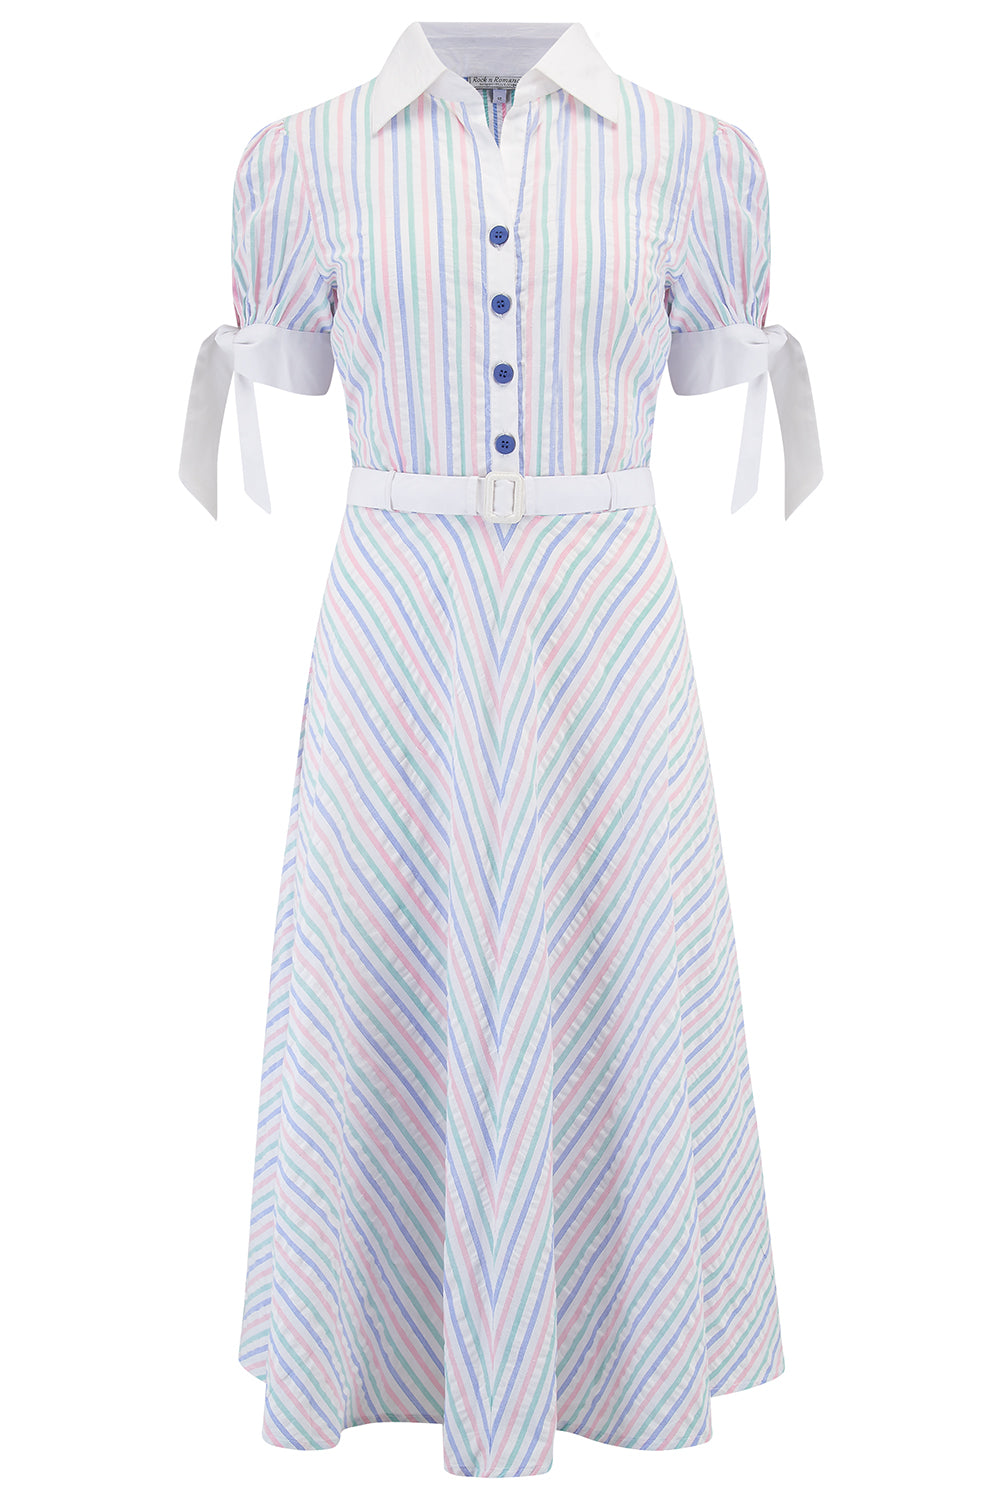 "Rock n Romance **Sample Sale** ""Debbie"" Tea Dress in Pastel Stripe Cotton Seersucker, Classic 1950s Vintage Style - RocknRomance Clothing"